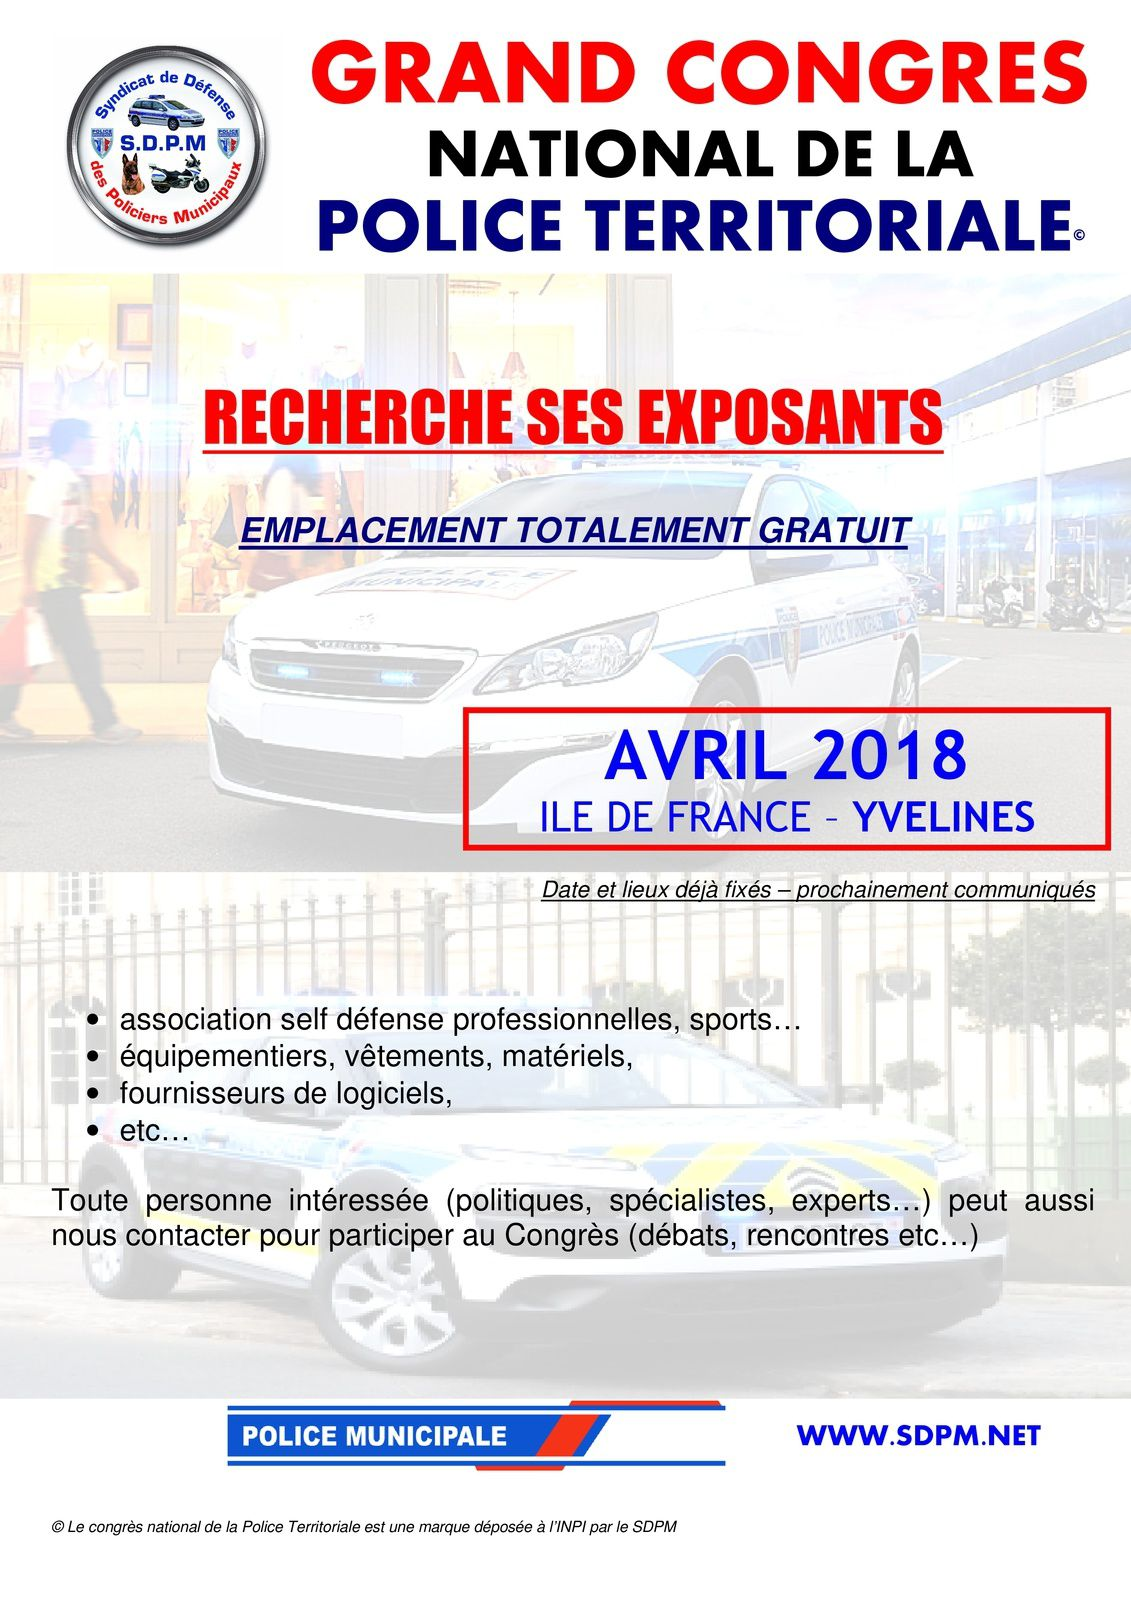 Grand Congrès National de la Police Territoriale en avril 2018, Ile France